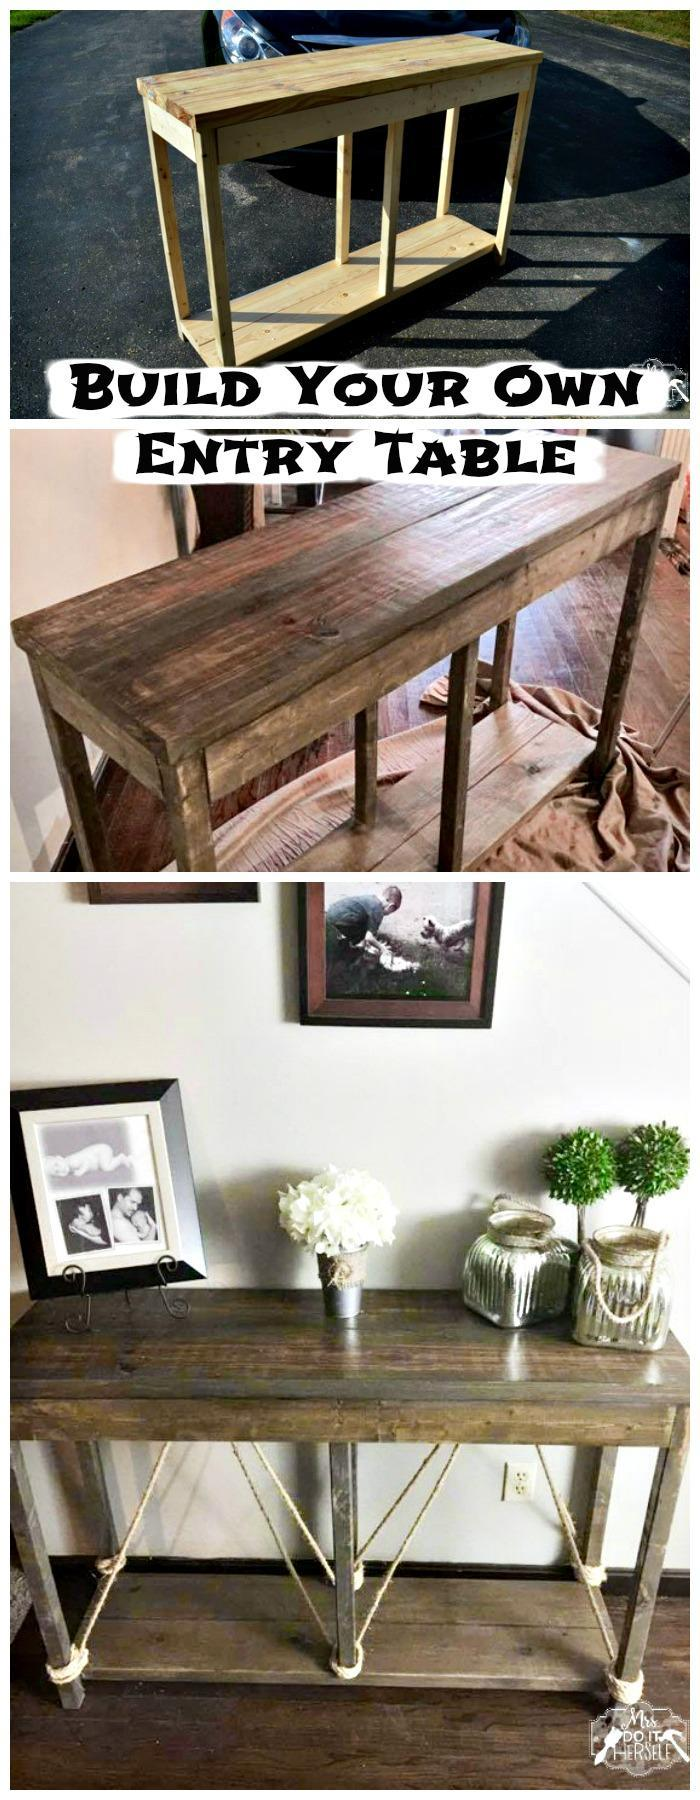 DIY Wooden Entryway Table DIY Entry Table Ideas To Make Your Entryway Perfect